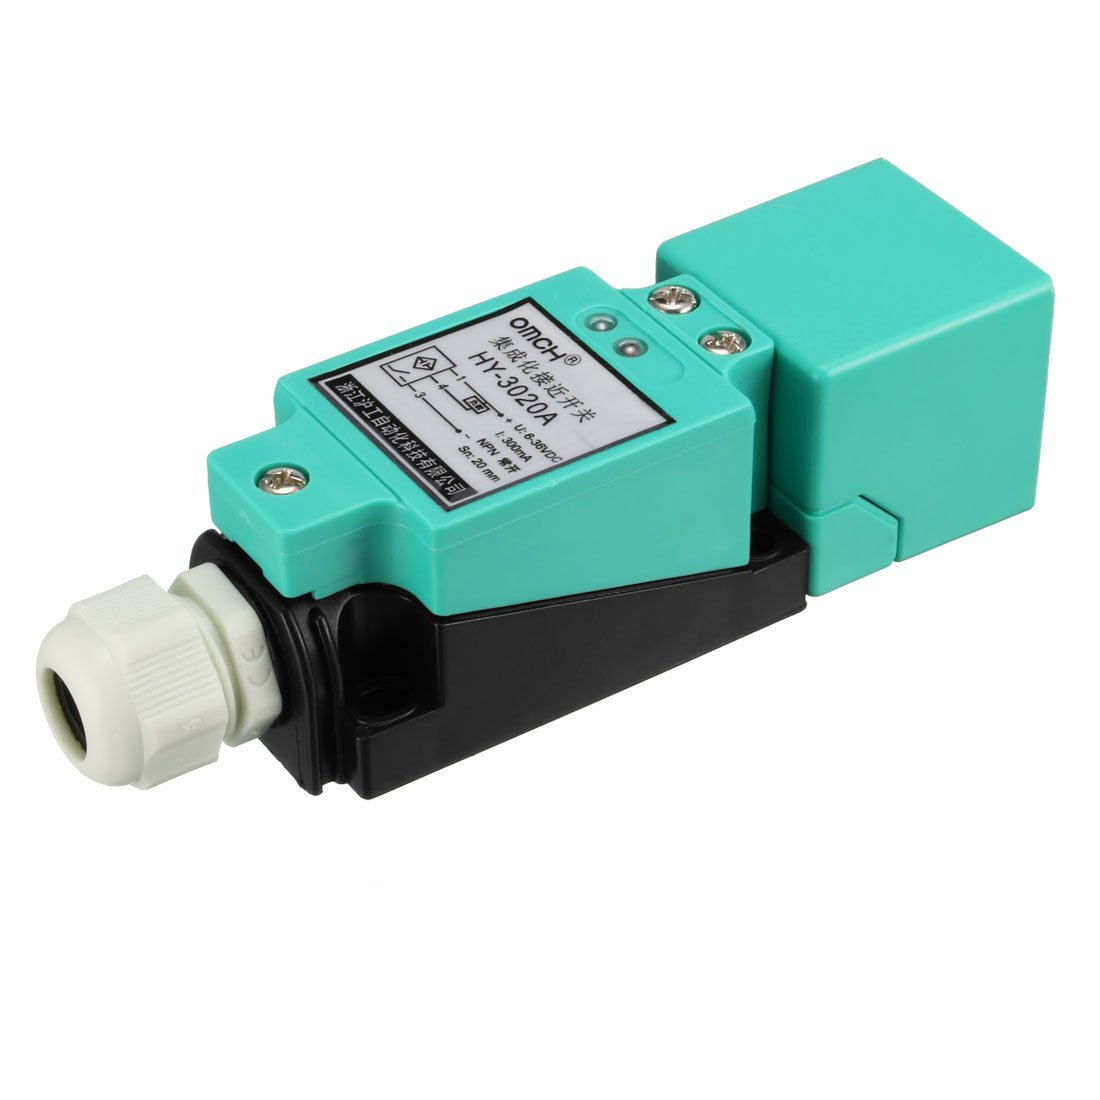 Sn04 P 4mm Approach Sensor Proximity Switch Pnp No Dc 10 In Addition Npn Sensors Diagram On Inductive 30v 200ma Home Improvement